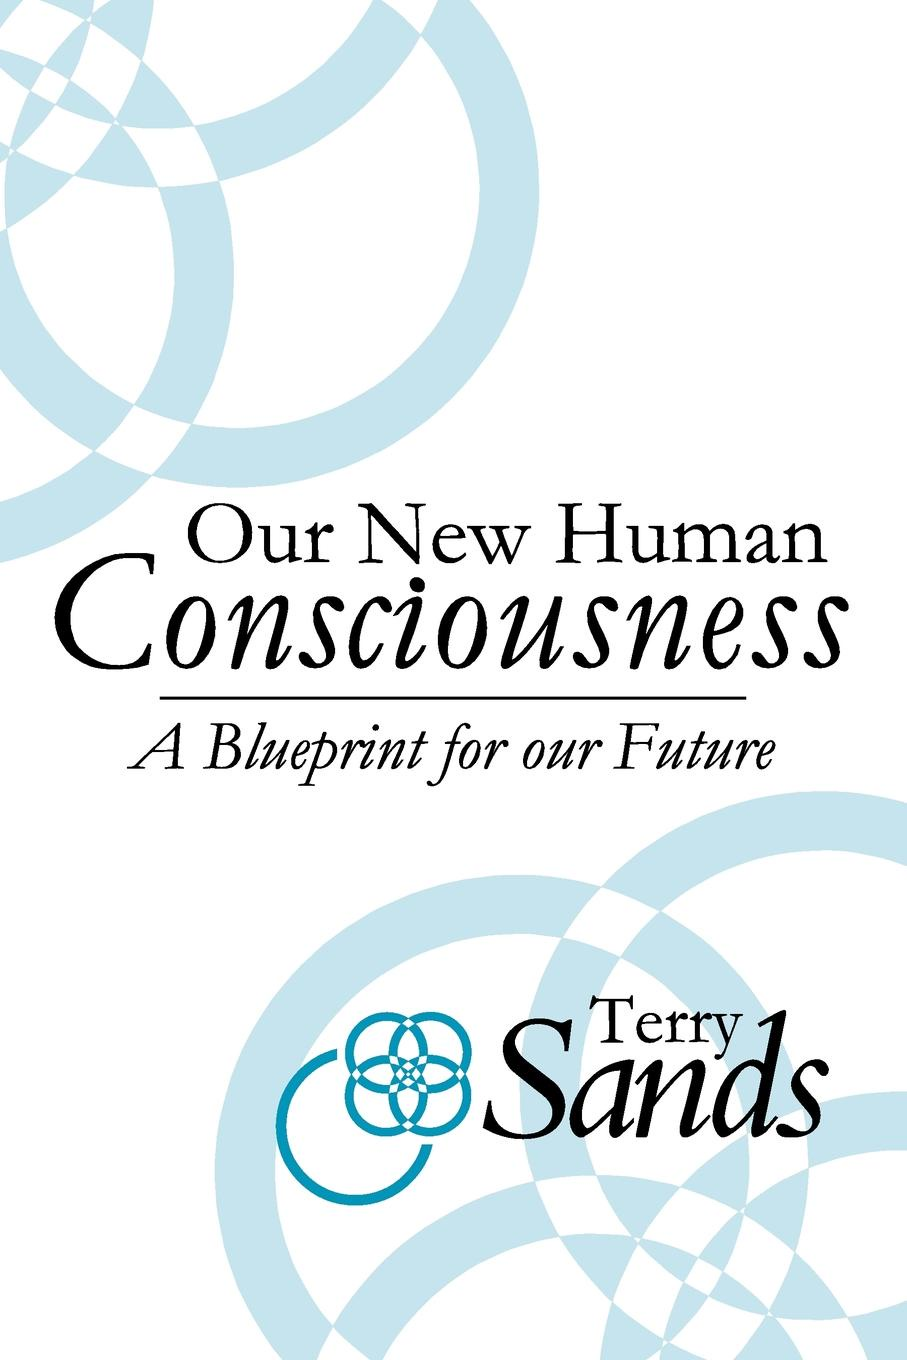 Terry Sands Our New Human Consciousness. A Blueprint for the Flow of Life 2nd Edition adrian rogers foundations for our faith volume 1 2nd edition romans 1 4